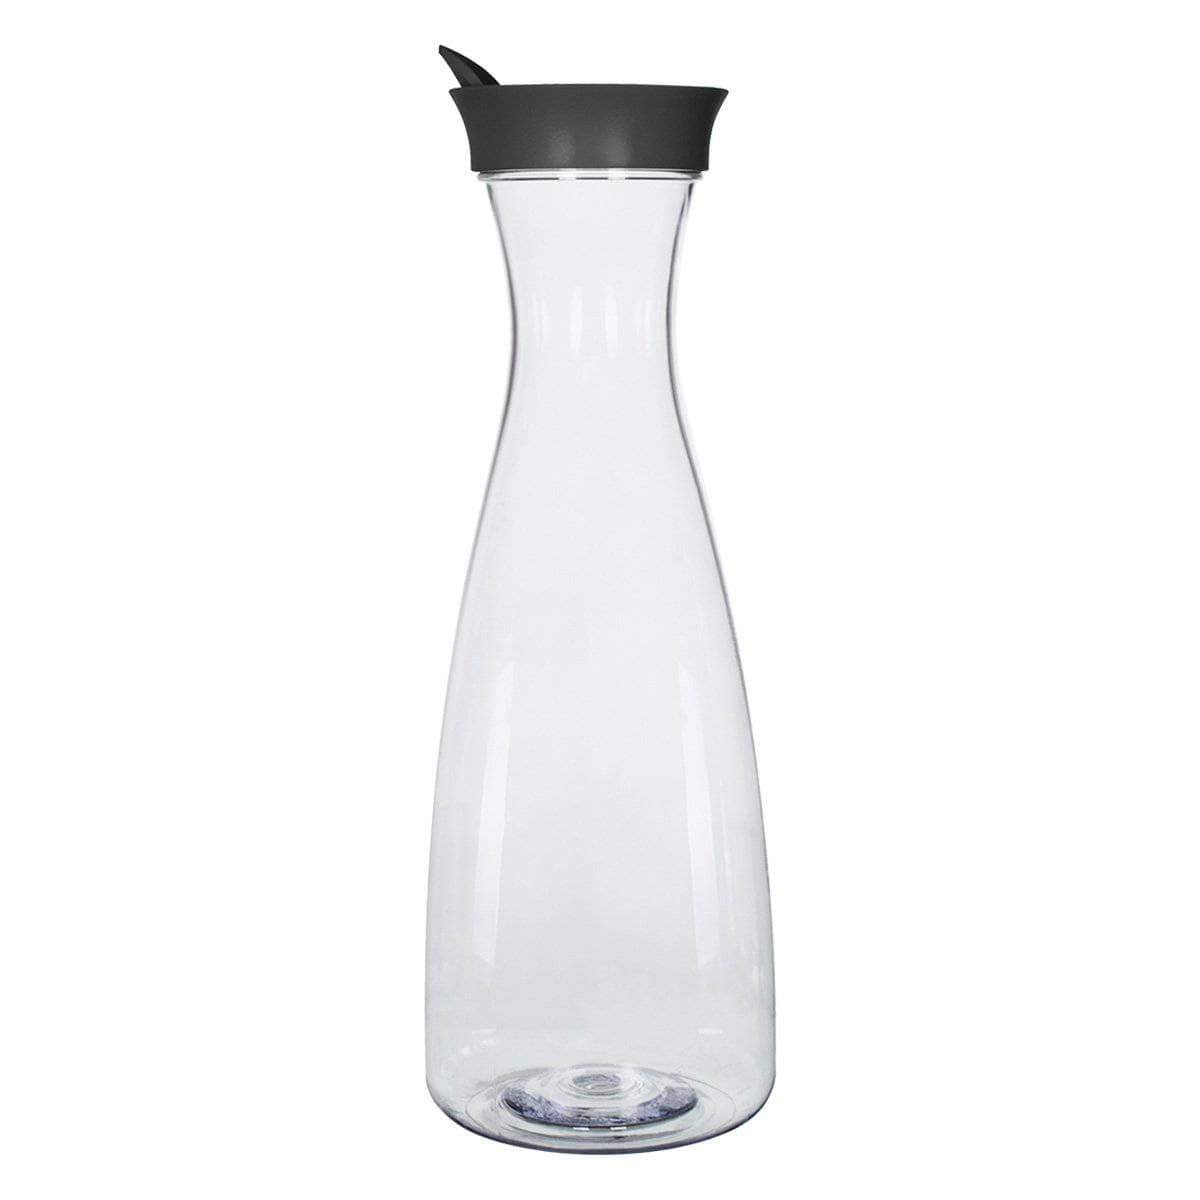 Geo Bottles Pitchers Black 1.5 Liter (50 oz.) BPA FREE Plastic Carafe Pitcher Decanter Jug with Green Lid